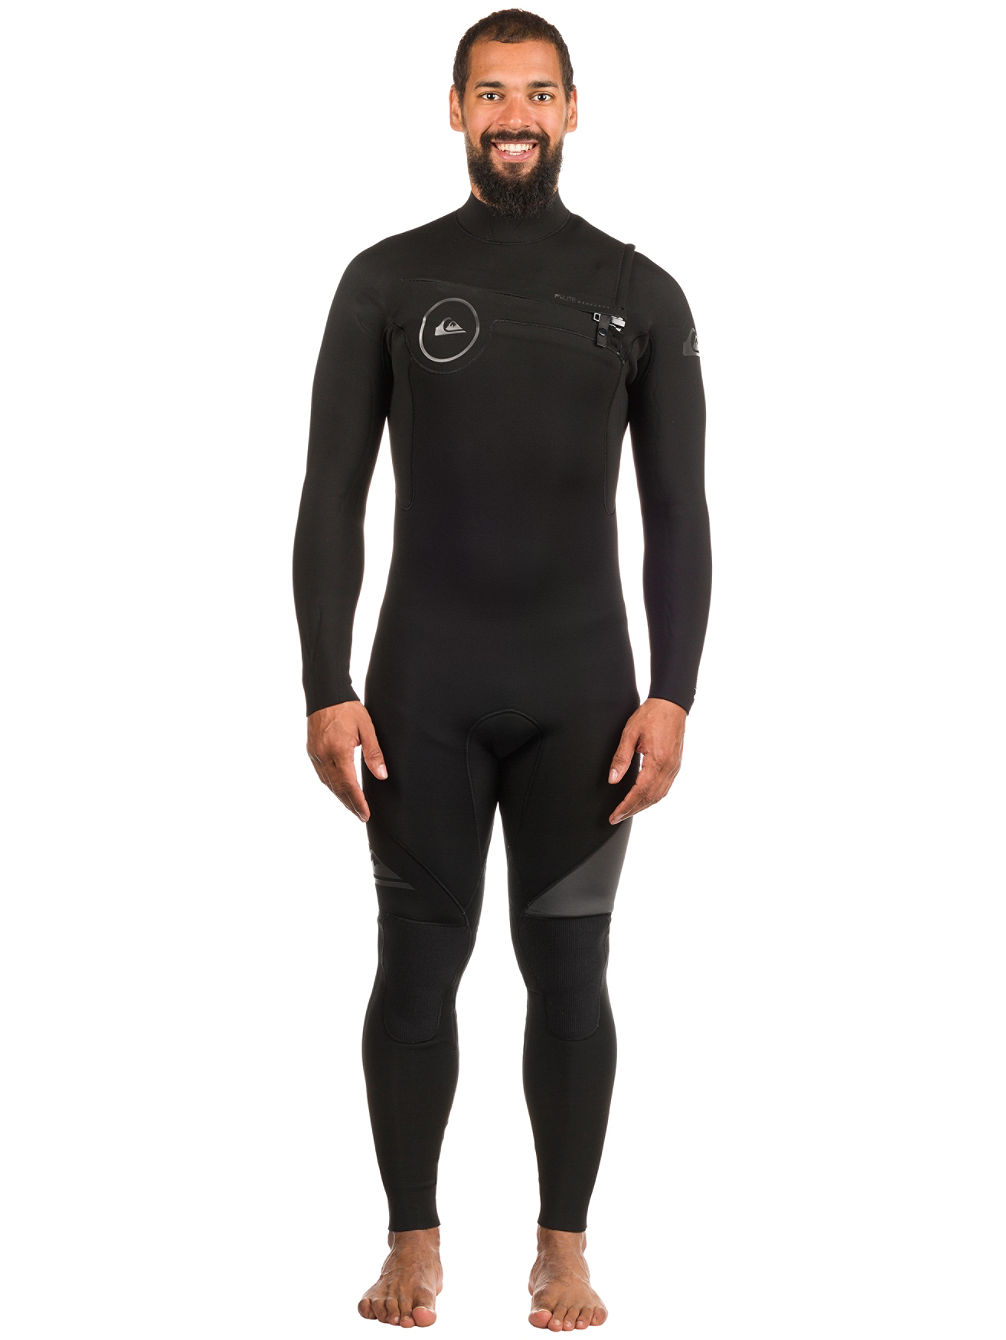 4/3 Syncro Series Chest Zip Gbs Wetsuit